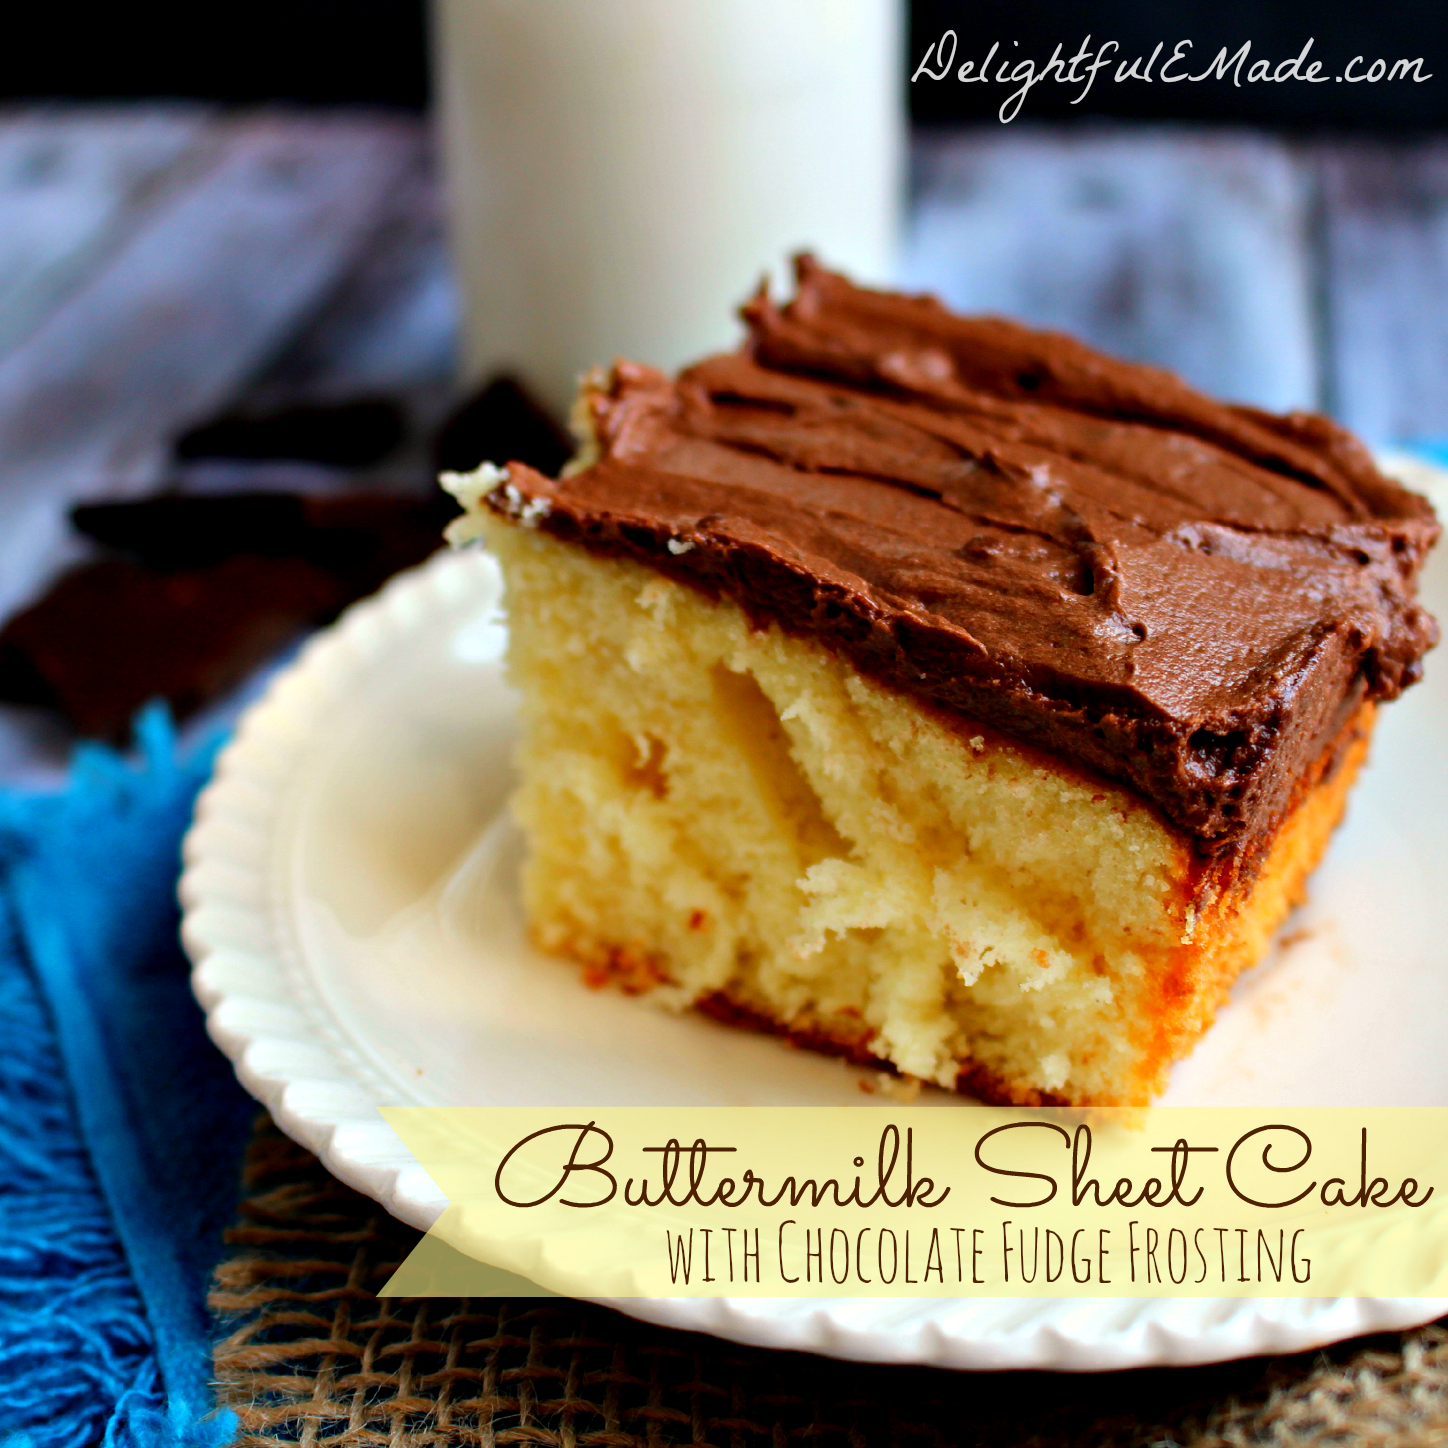 Old Fashioned Chocolate Buttermilk Sheet Cake